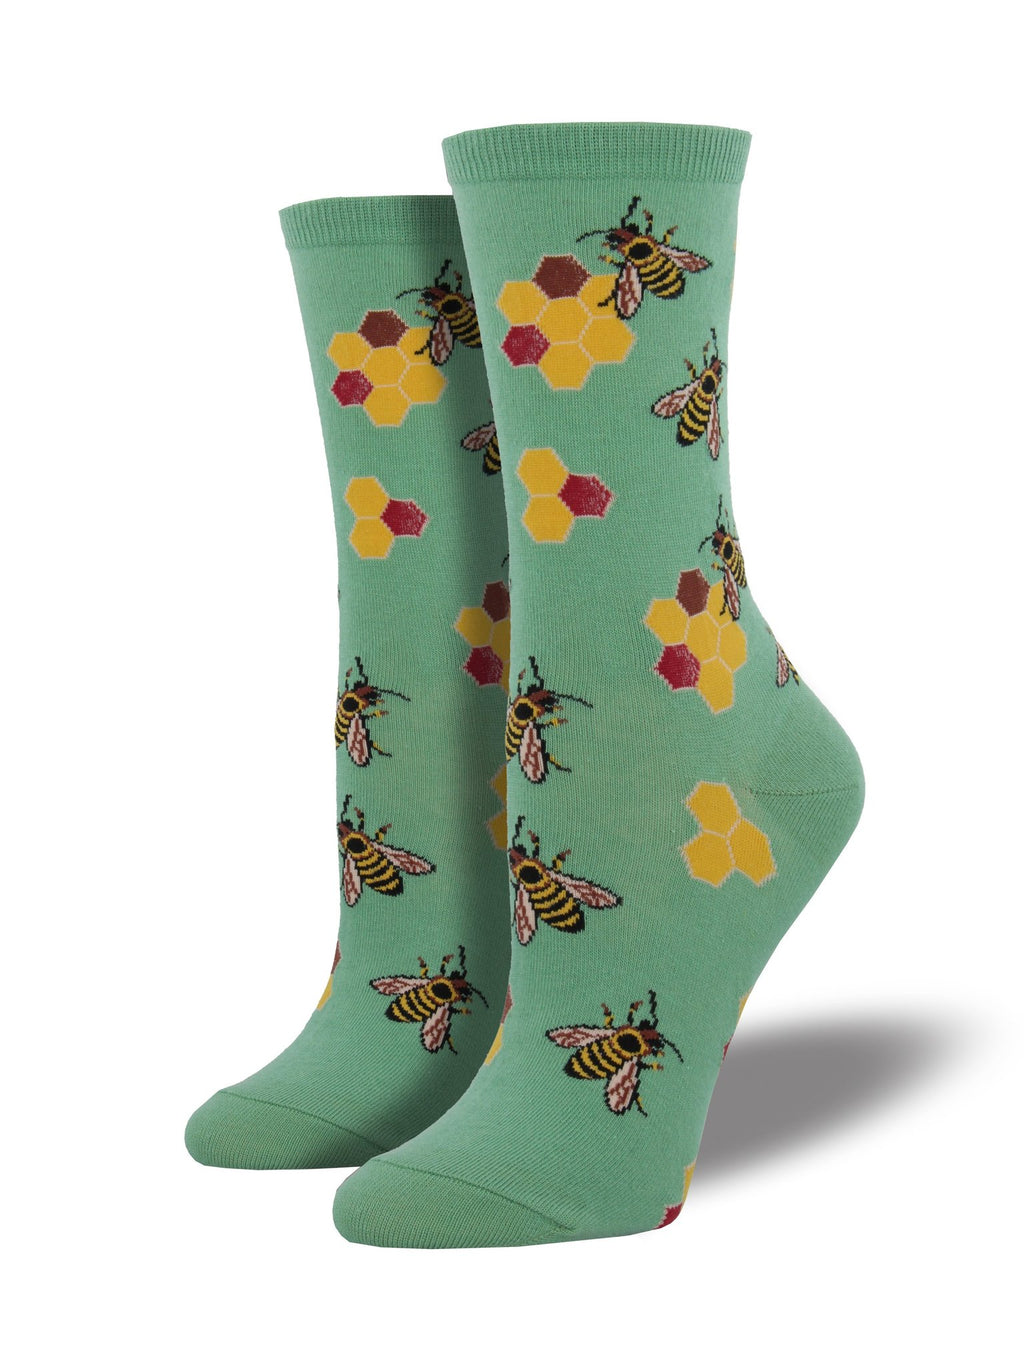 Busy Bees Sea Foam Women's Socks